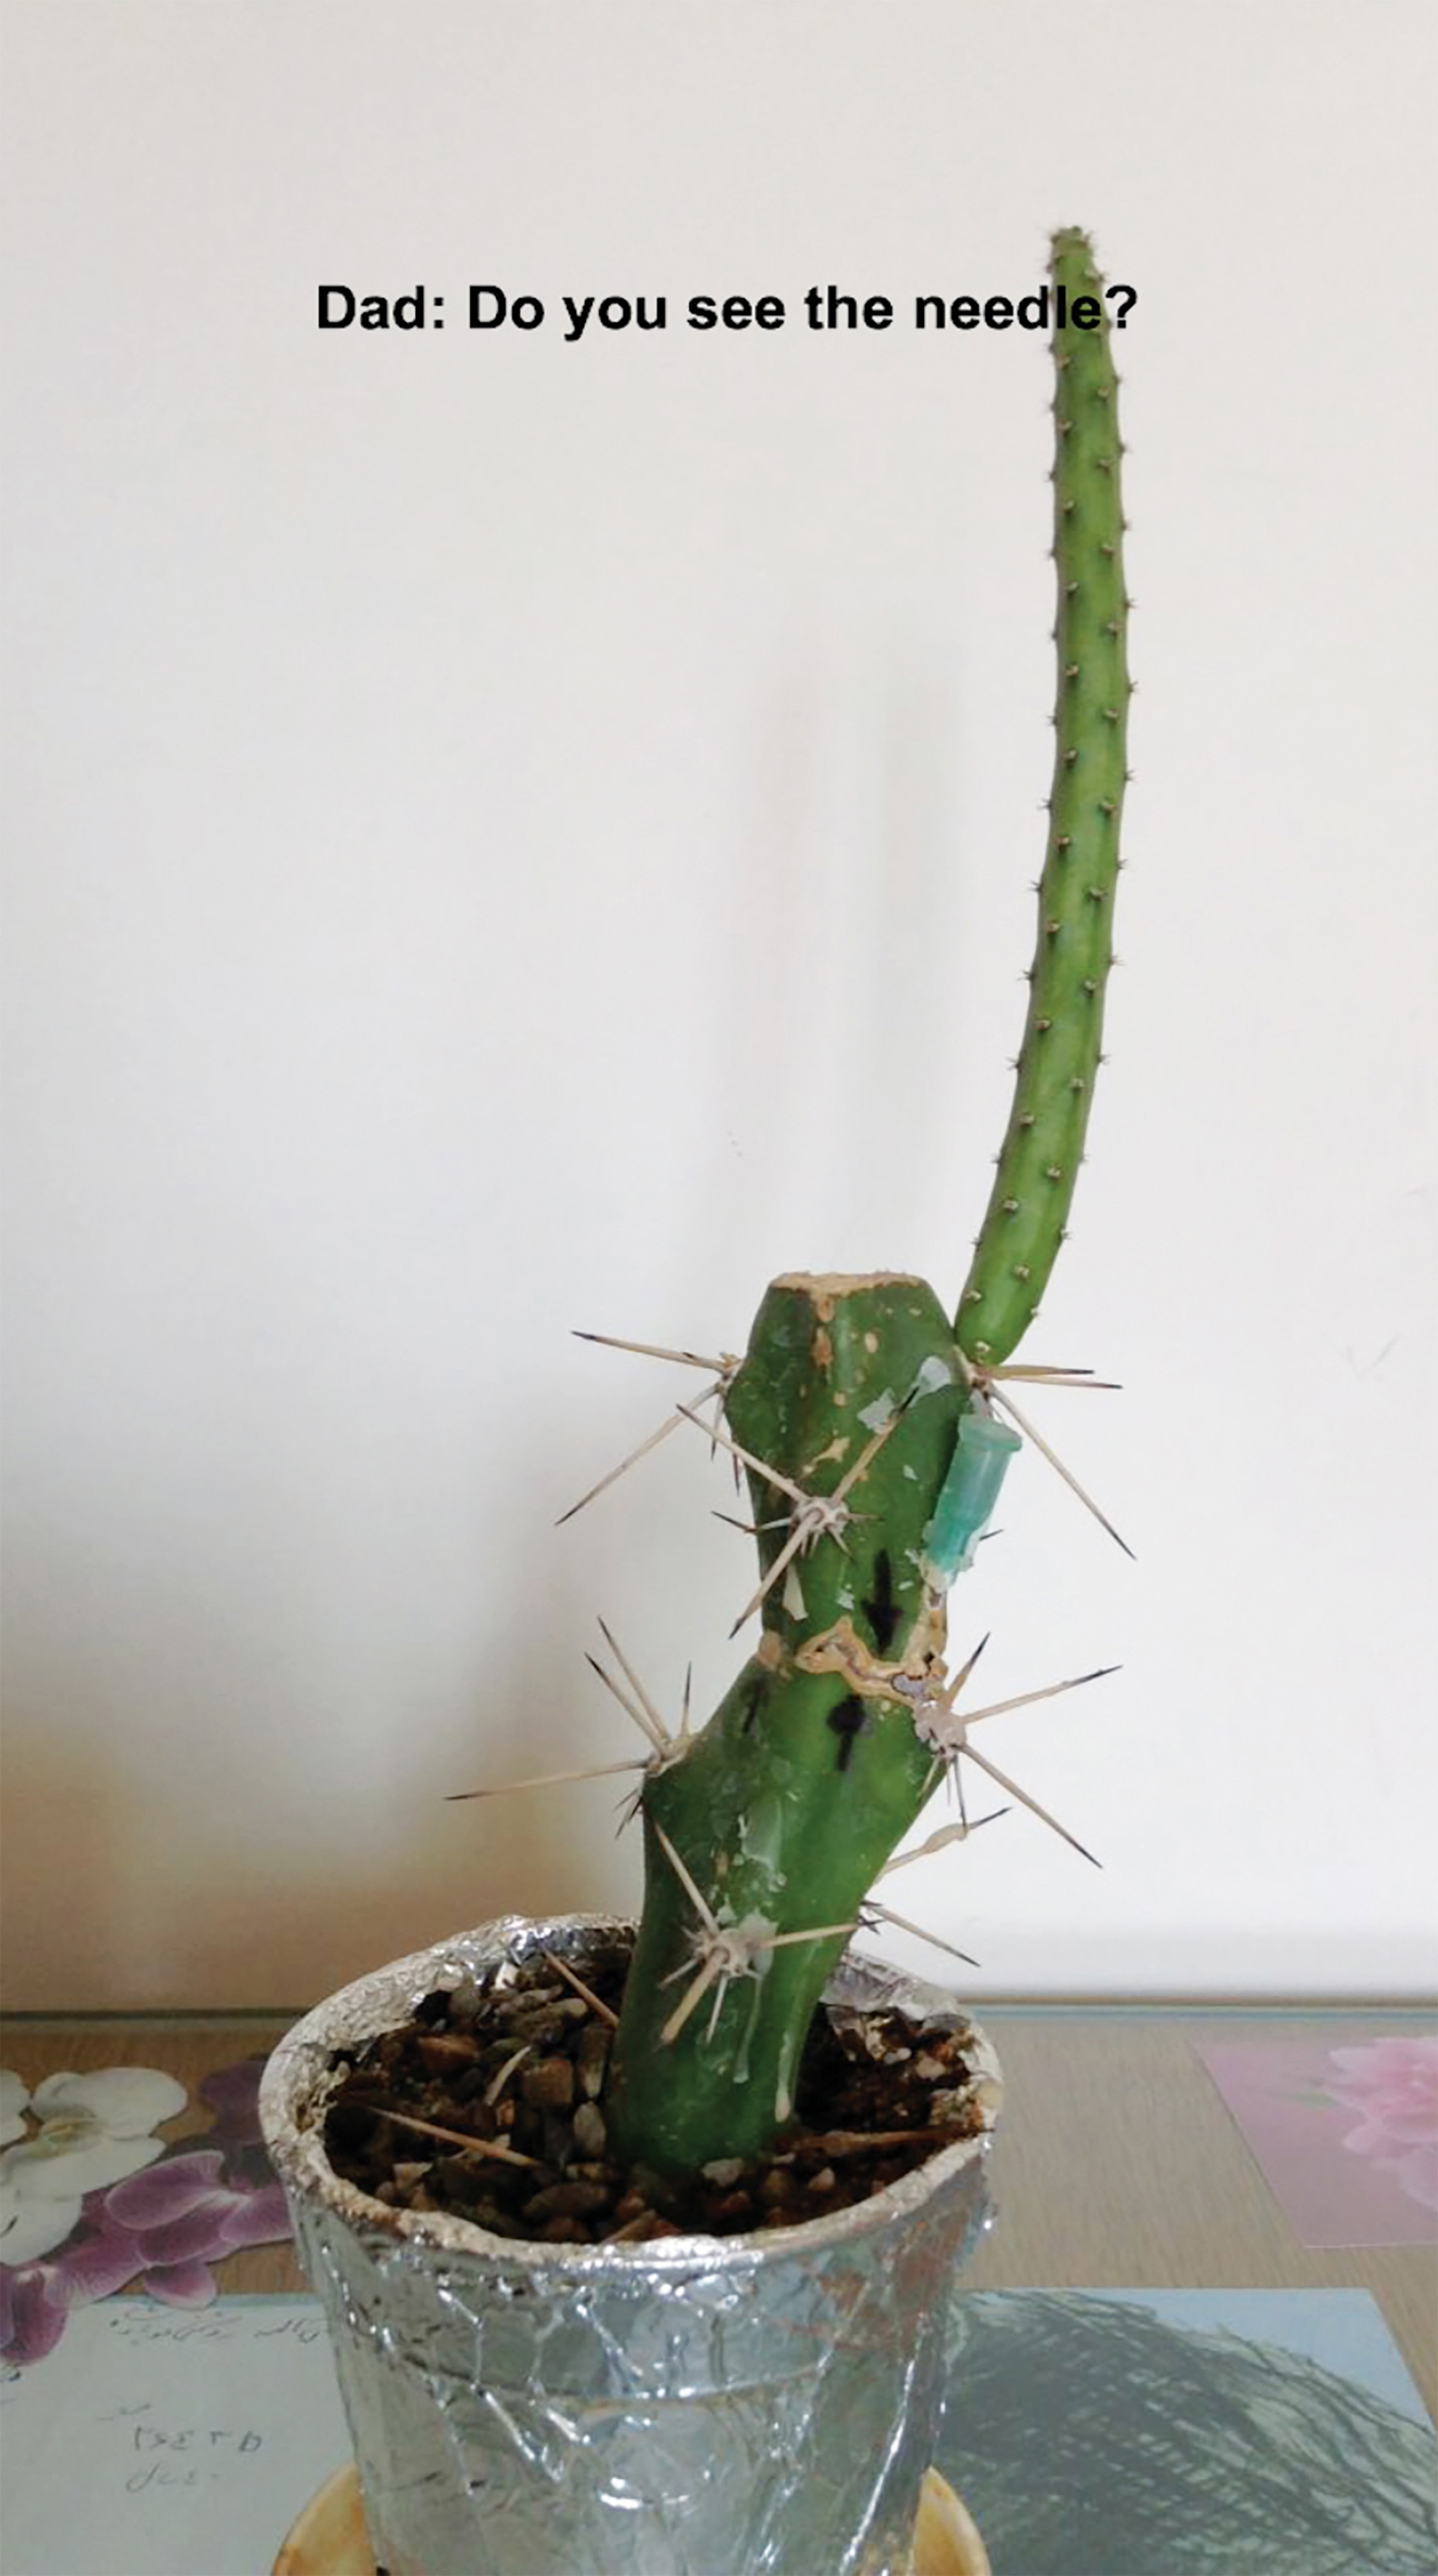 Sareh Imani,  Kindred Stitches (Video Still) , 2018, Right monitor: the sick cactus with sound and English subtitles, on loop, Duration: 00:05:58.